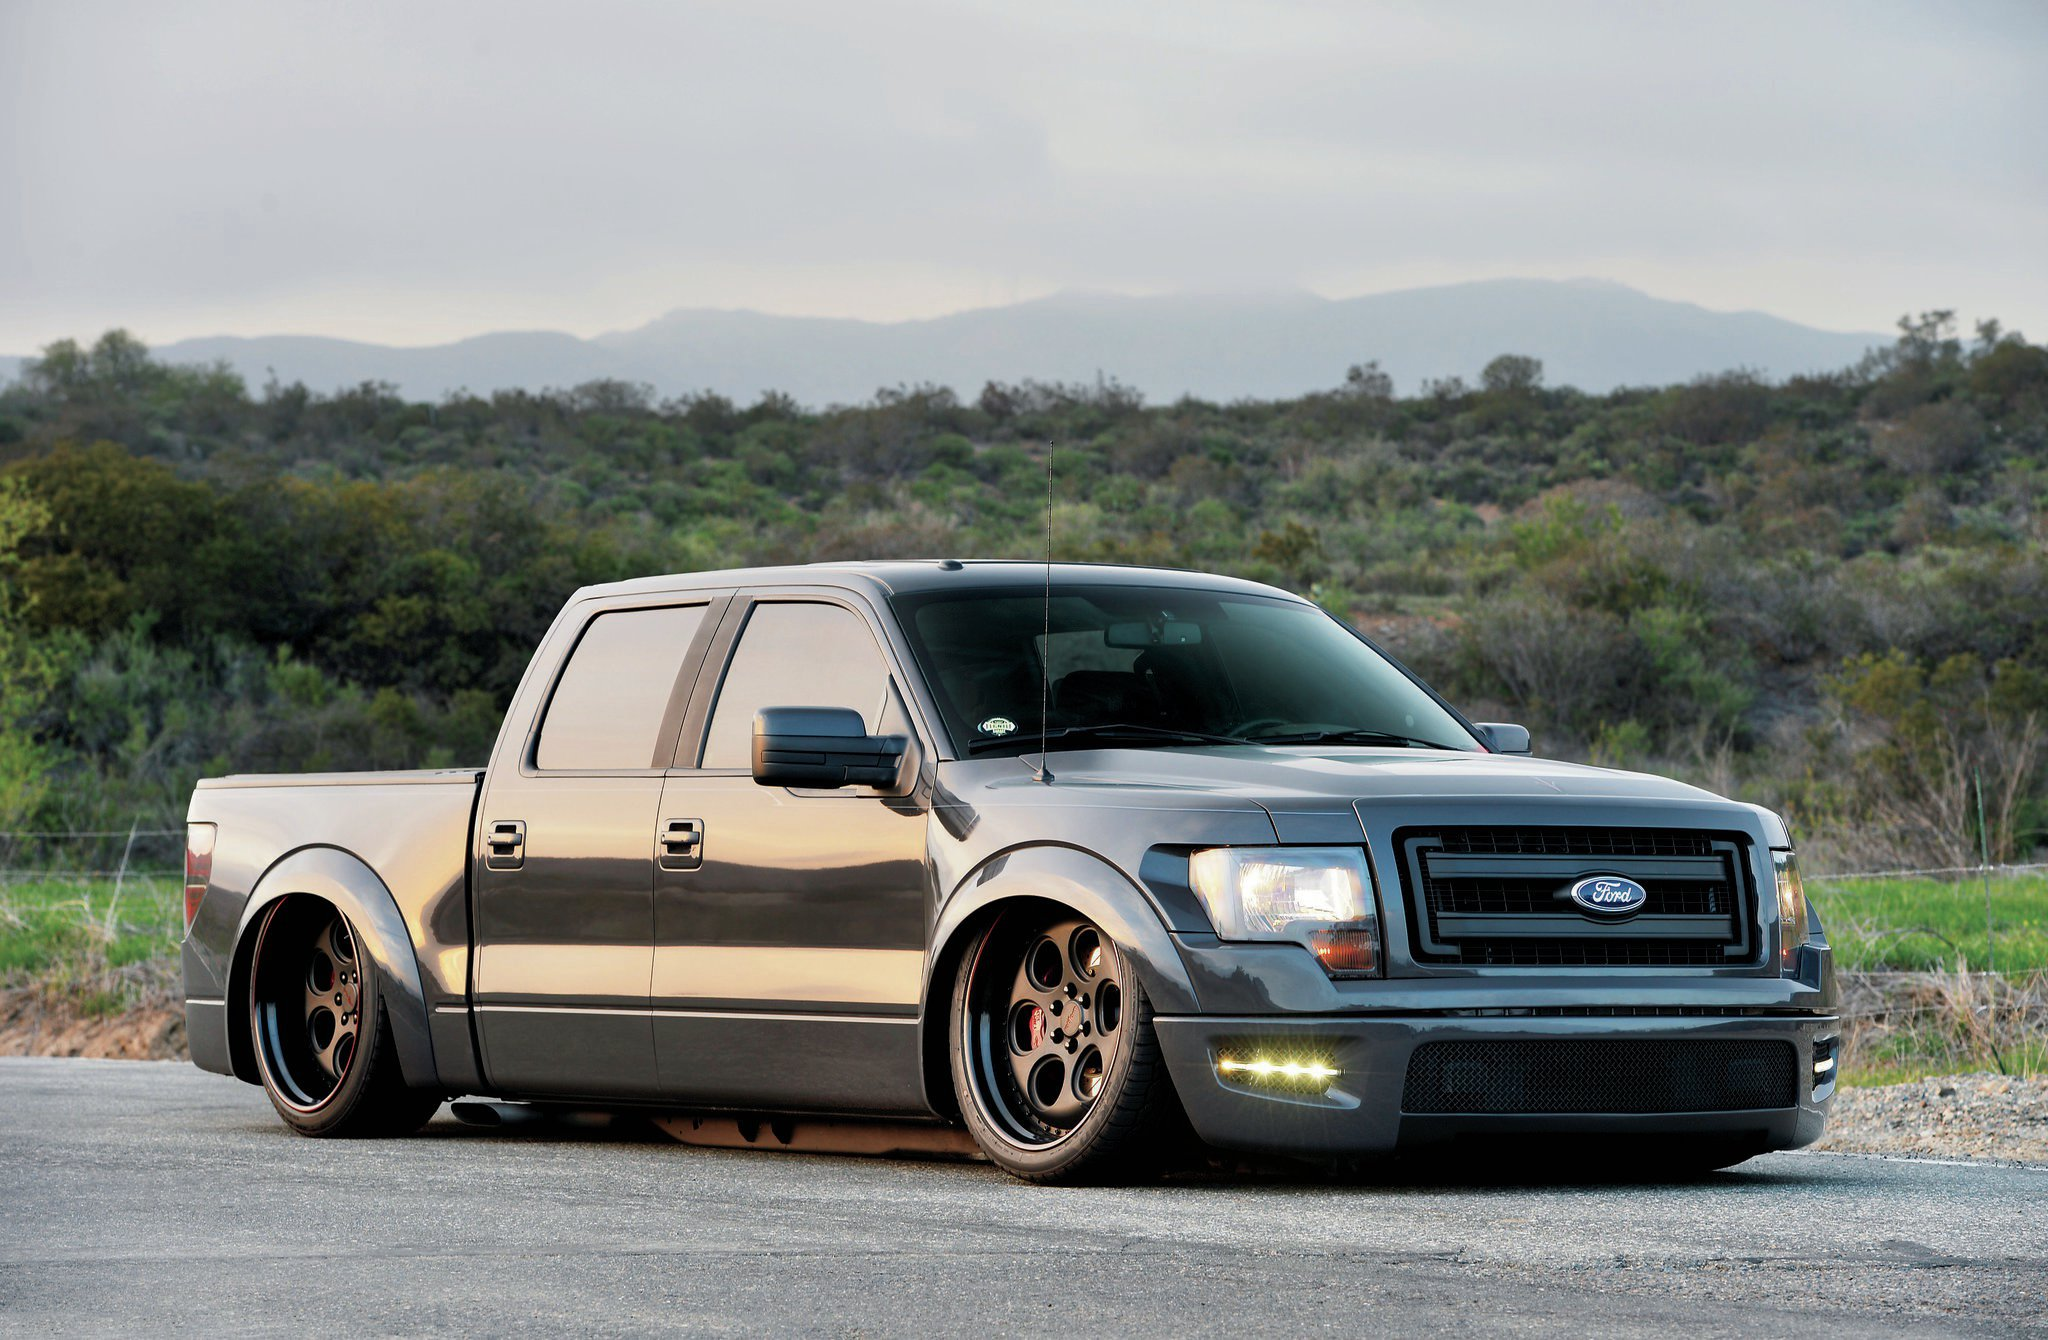 2014 Ford F 150 Svt Raptor Production Increasing To Meet